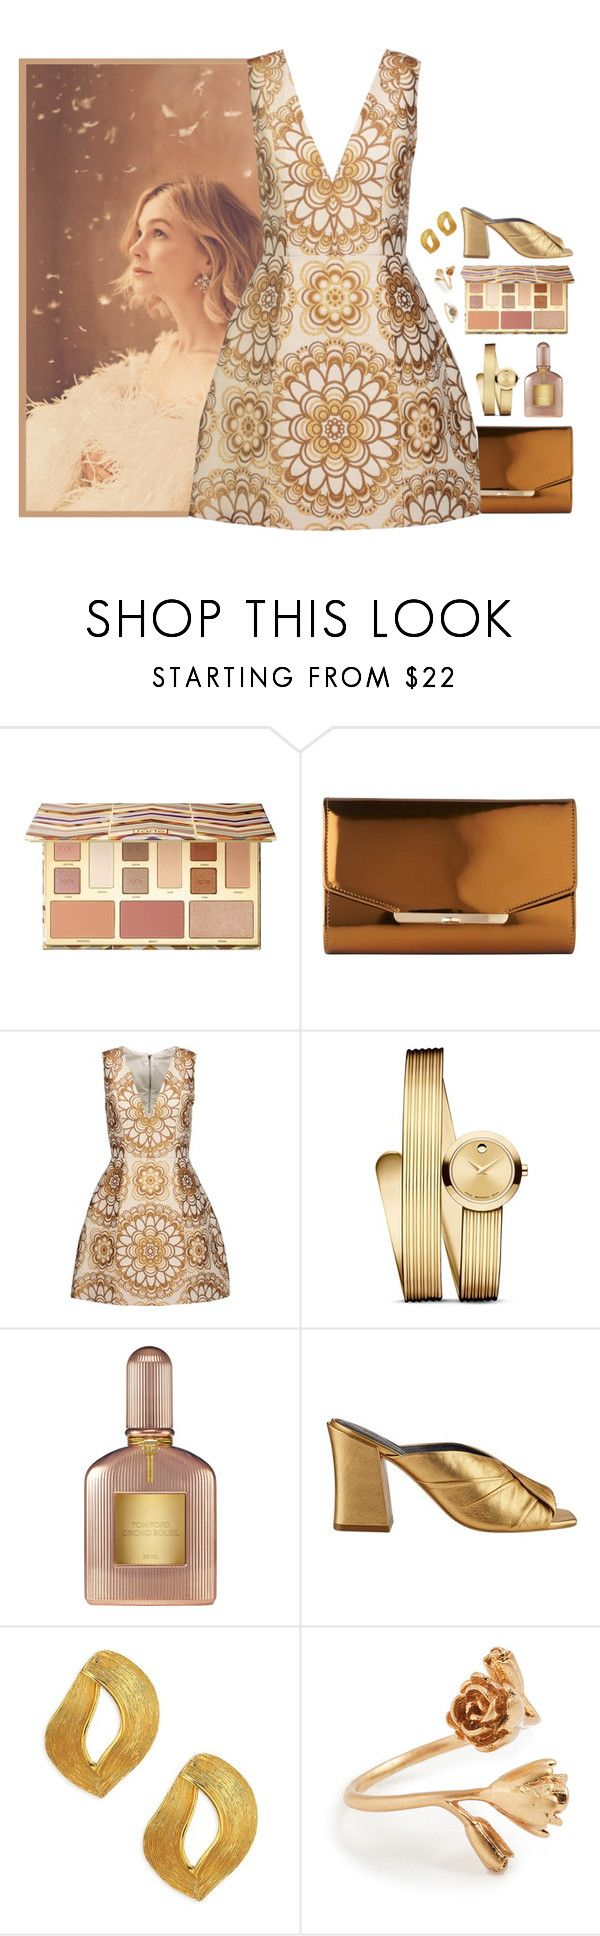 """815"" by helenelle ❤ liked on Polyvore featuring Sephora Collection, L.K.Bennett, Alice + Olivia, Movado, Sigerson Morrison, Oscar de la Renta and Madewell"